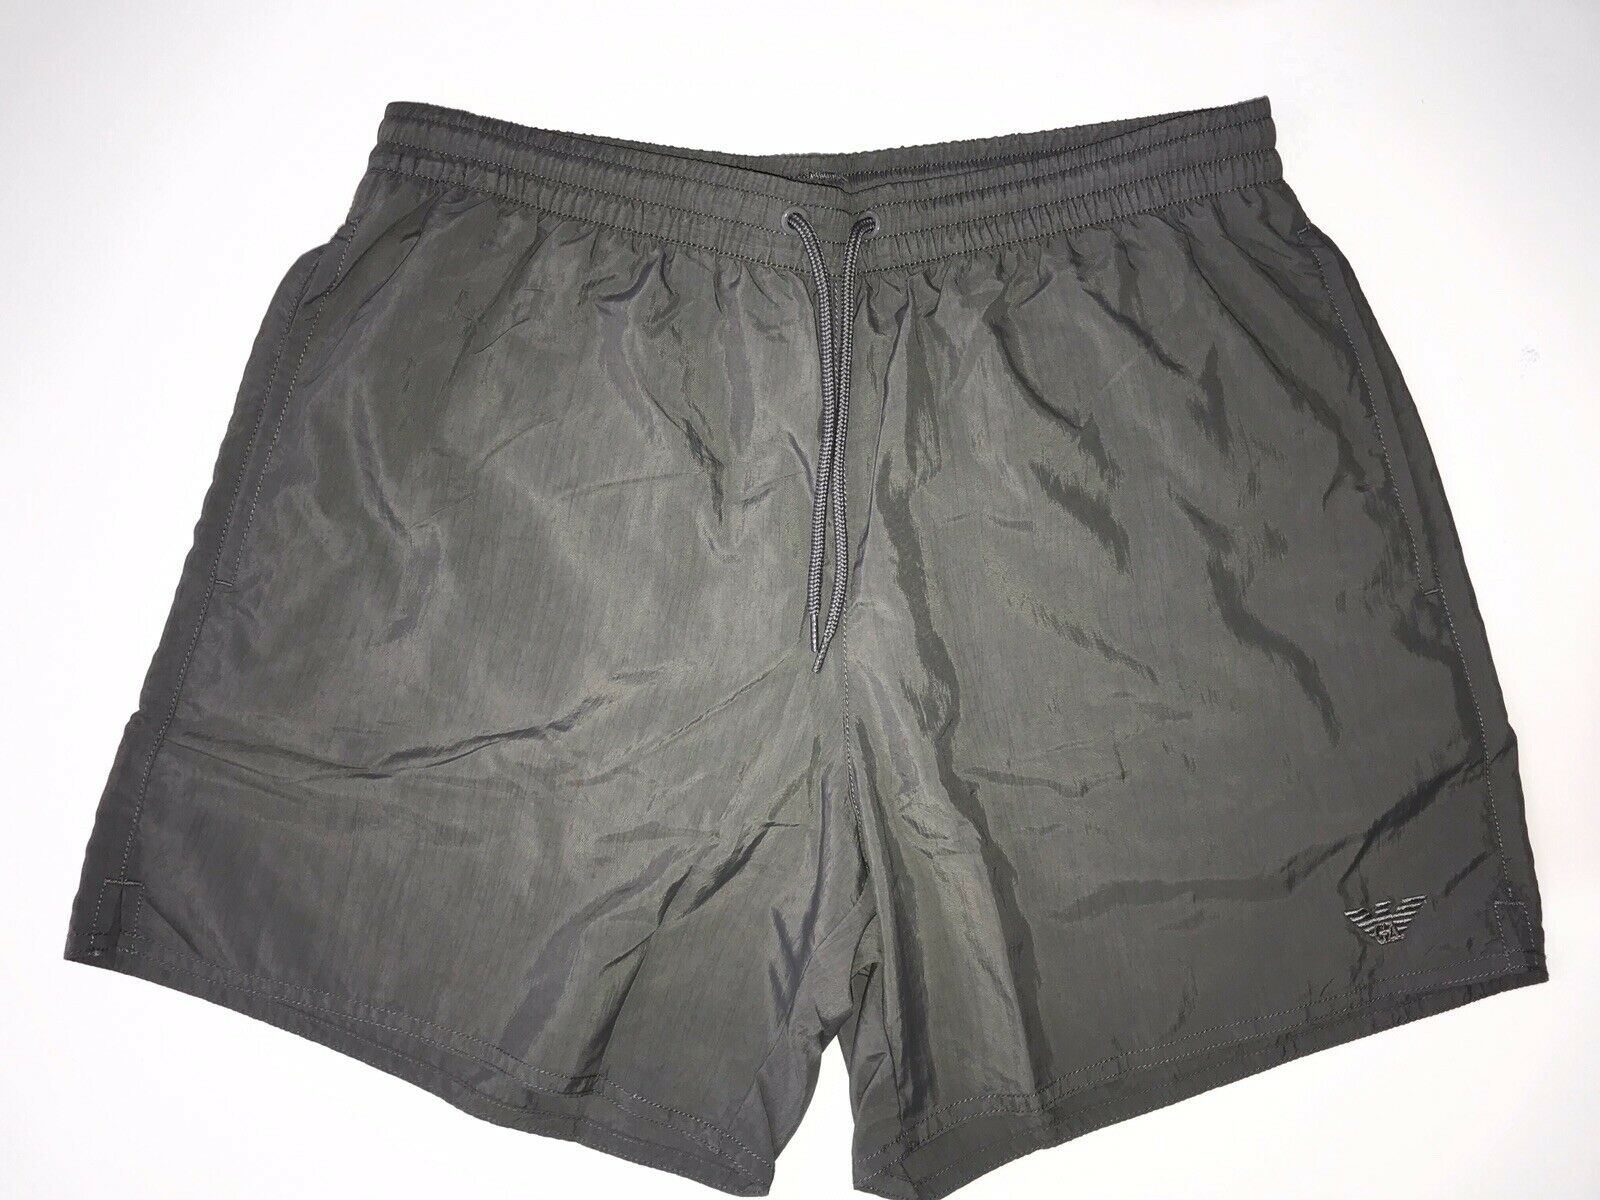 NWT $95 Emporio Armani Men's Gray Swim Logo Shorts Size 48 EU (32 US) Small